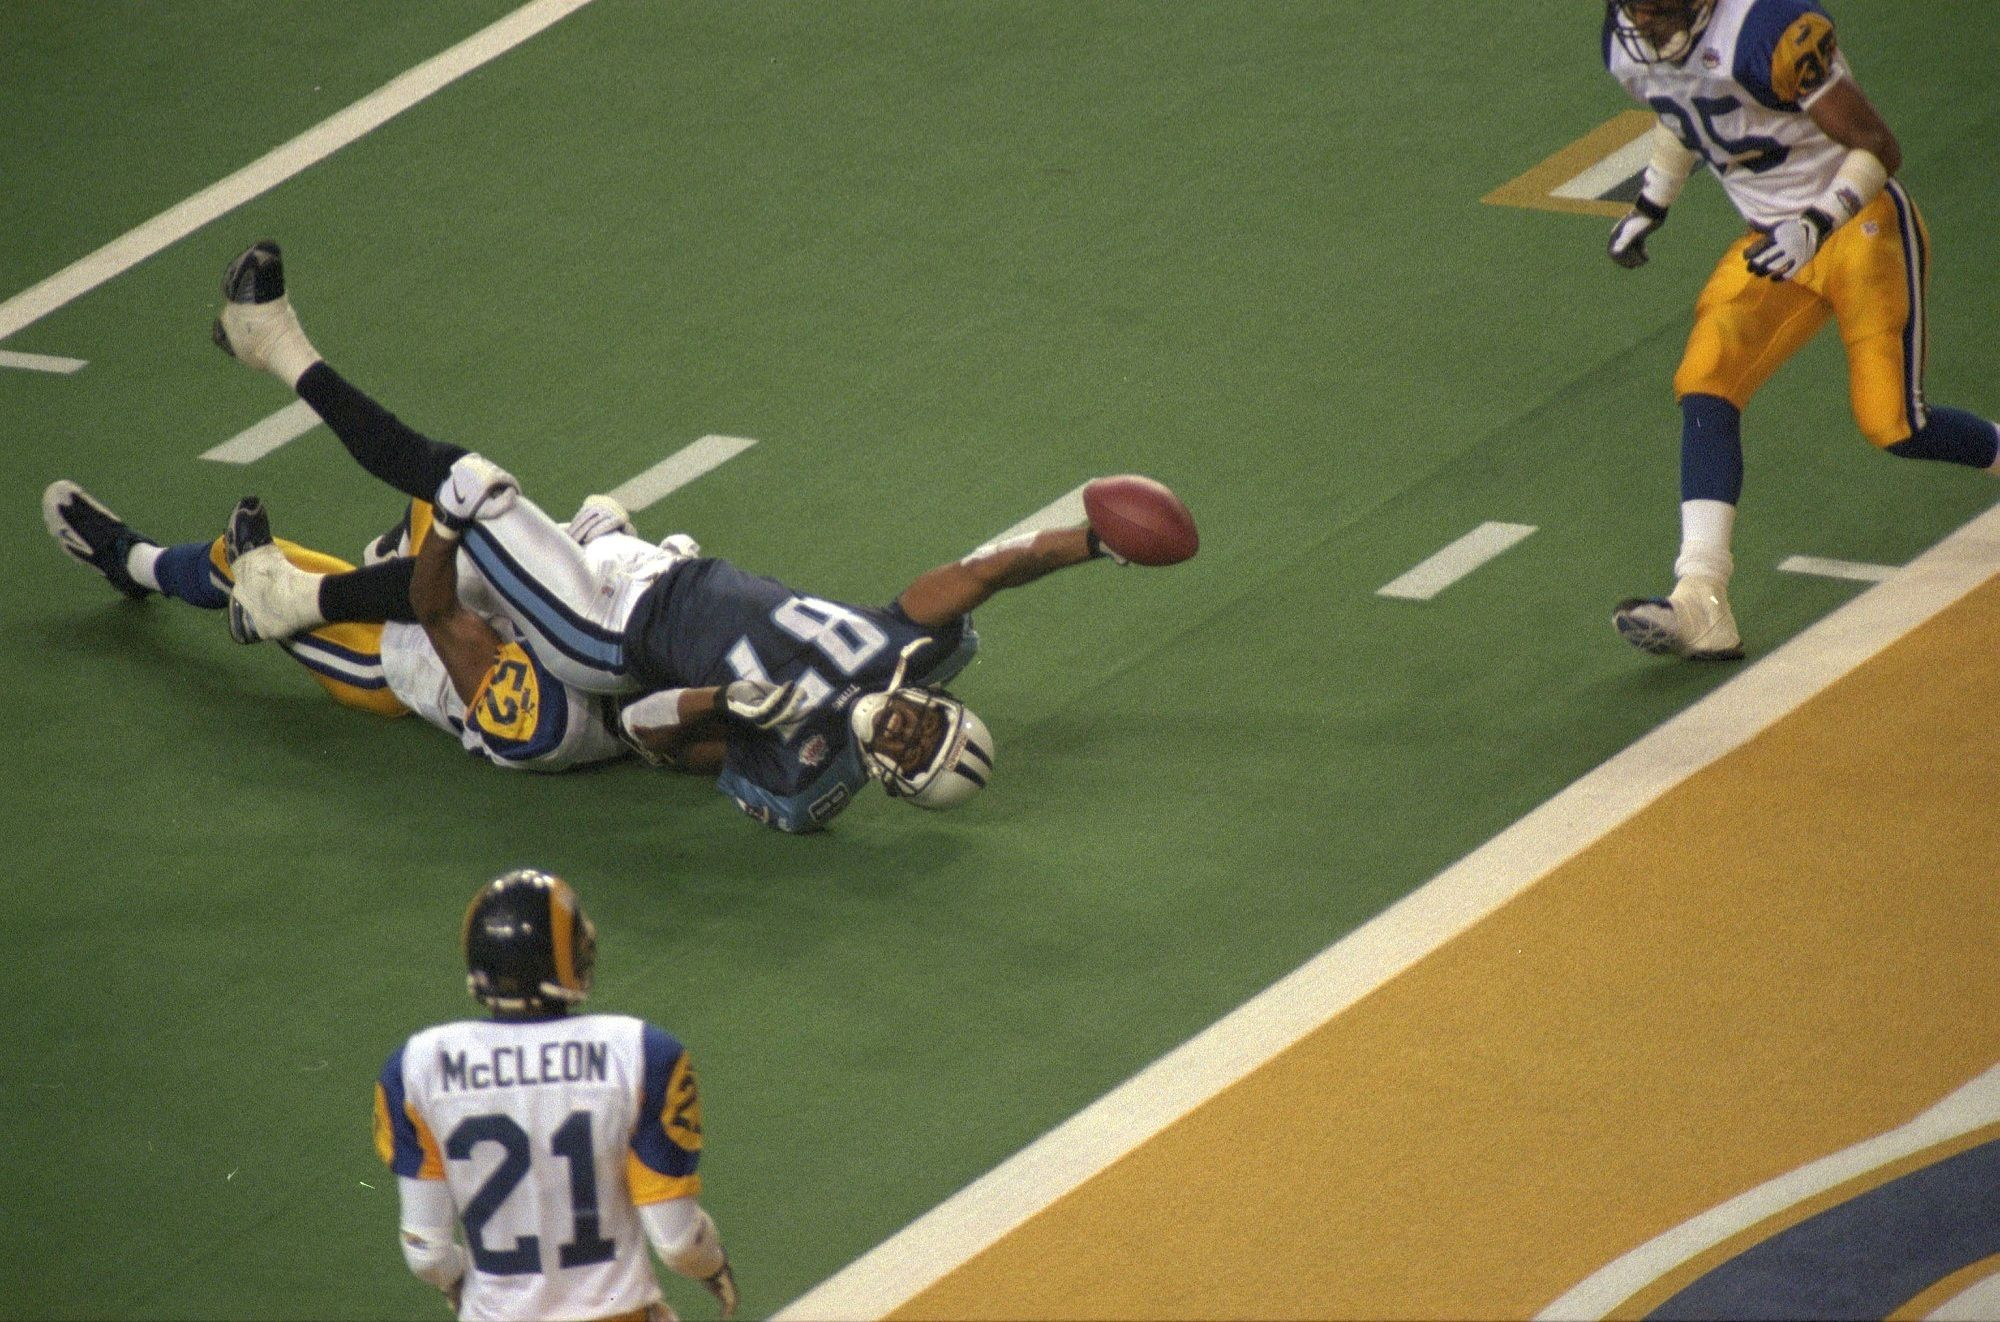 4e5b2a72e193 Super Bowl XXXIV - St. Louis Rams d. Tennessee Titans, 23–16 The Rams led  16–0 but the Titans scored 16 unanswered points to tie with 2:12 to play.